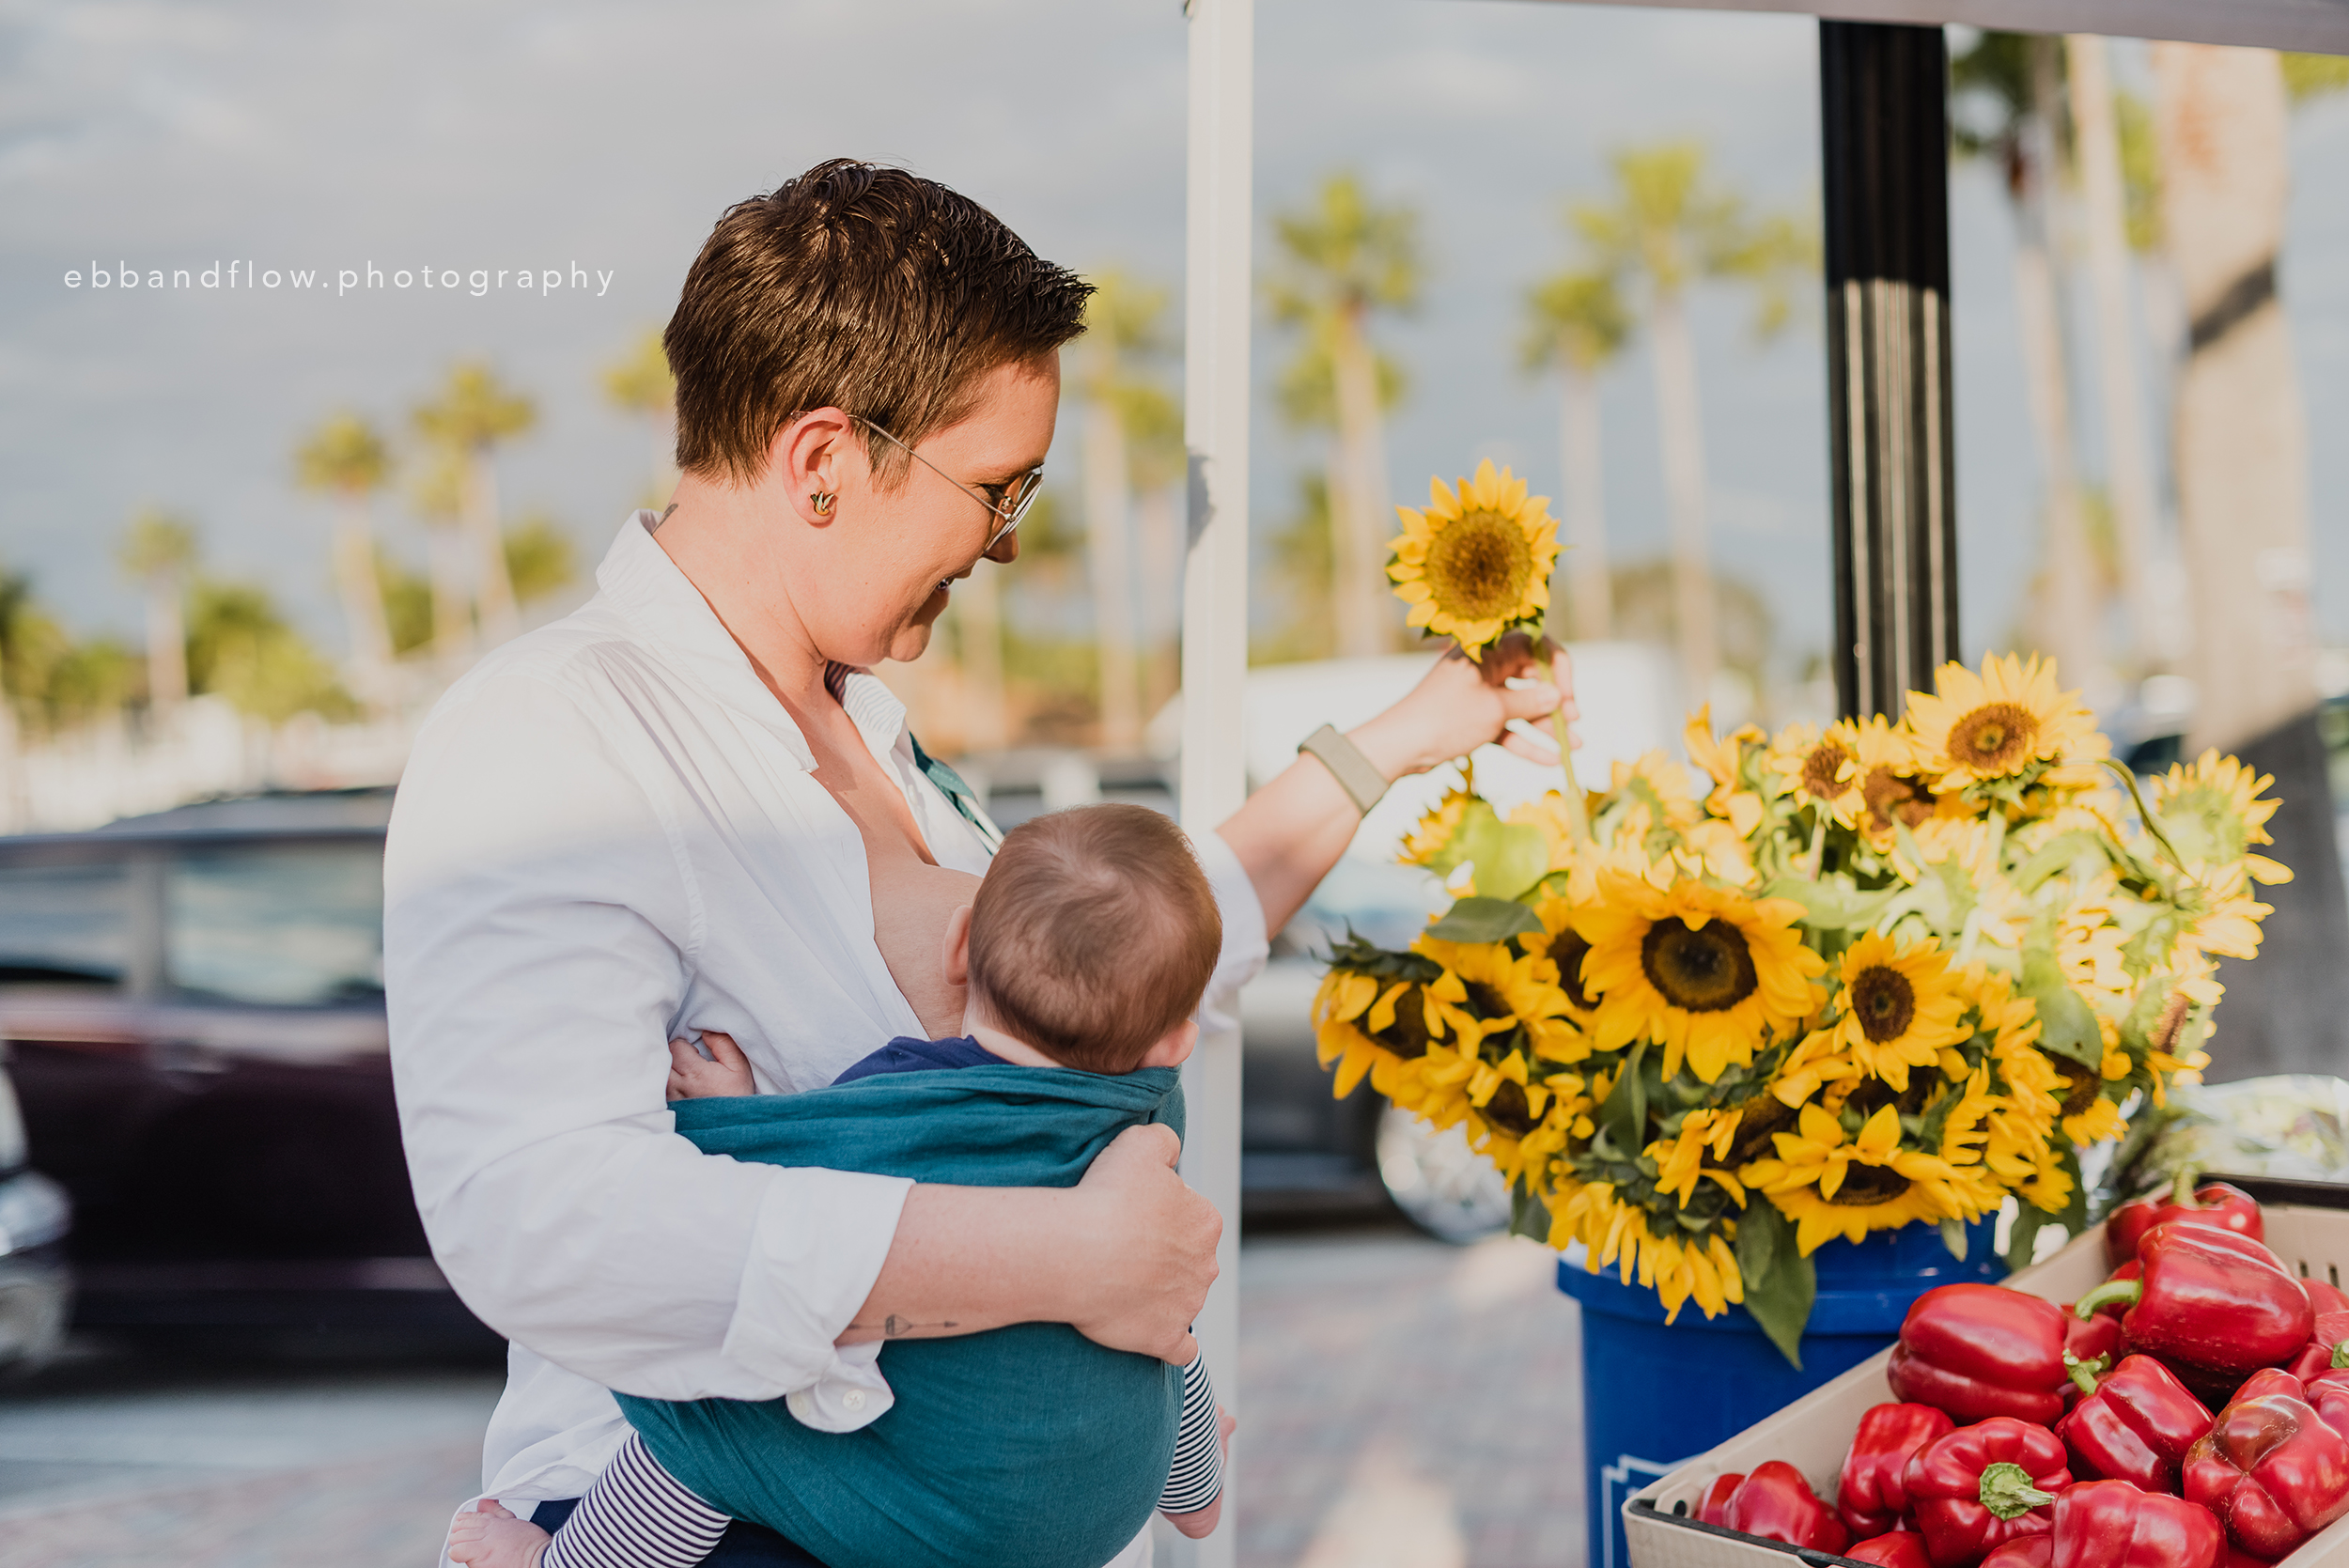 Fort Pierce Breastfeeding Photography - Ebb and Flow Photography -  Ring Sling at the Farmers Market.jpg